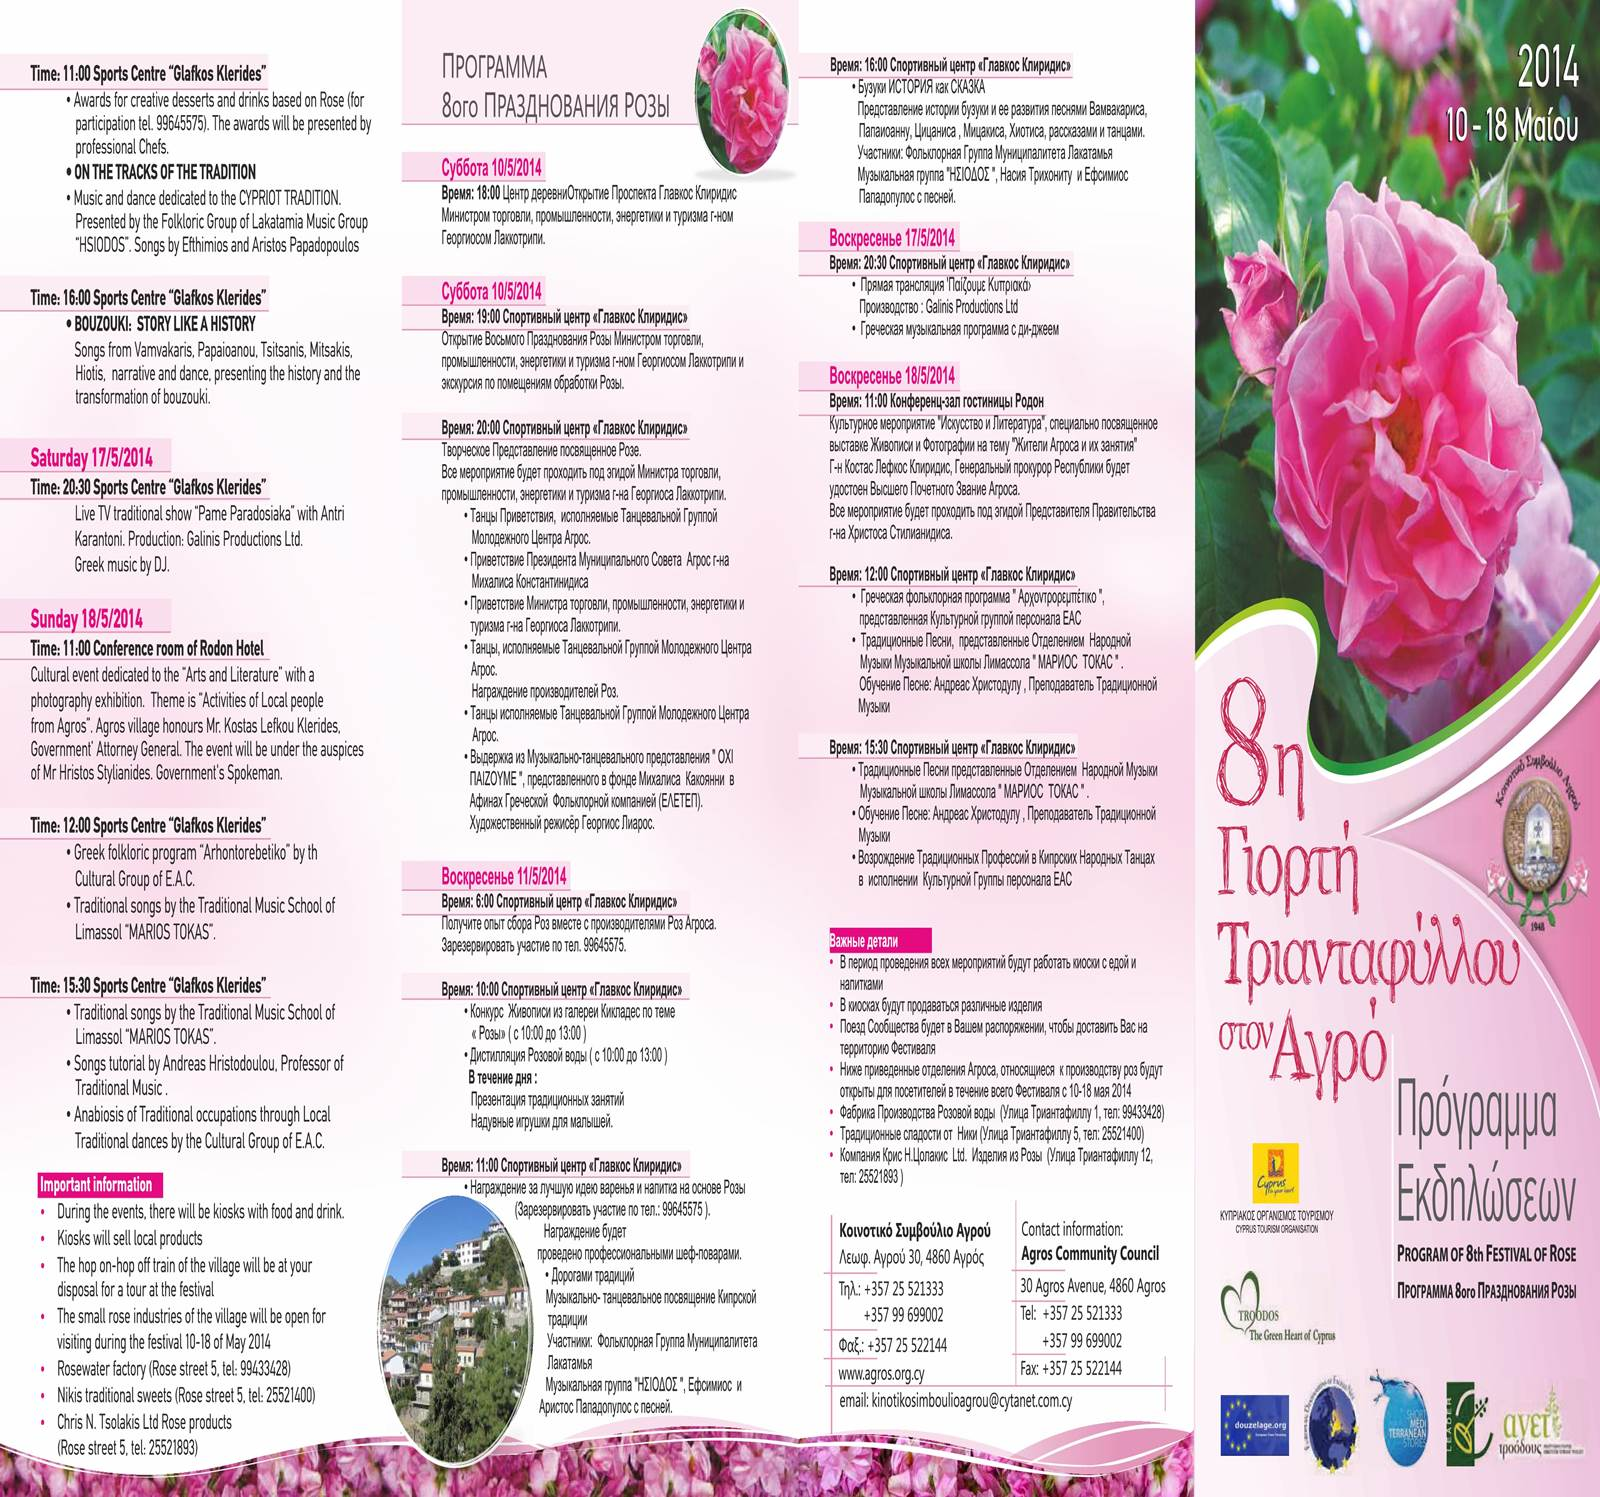 Festival Triantafillou Program 2014